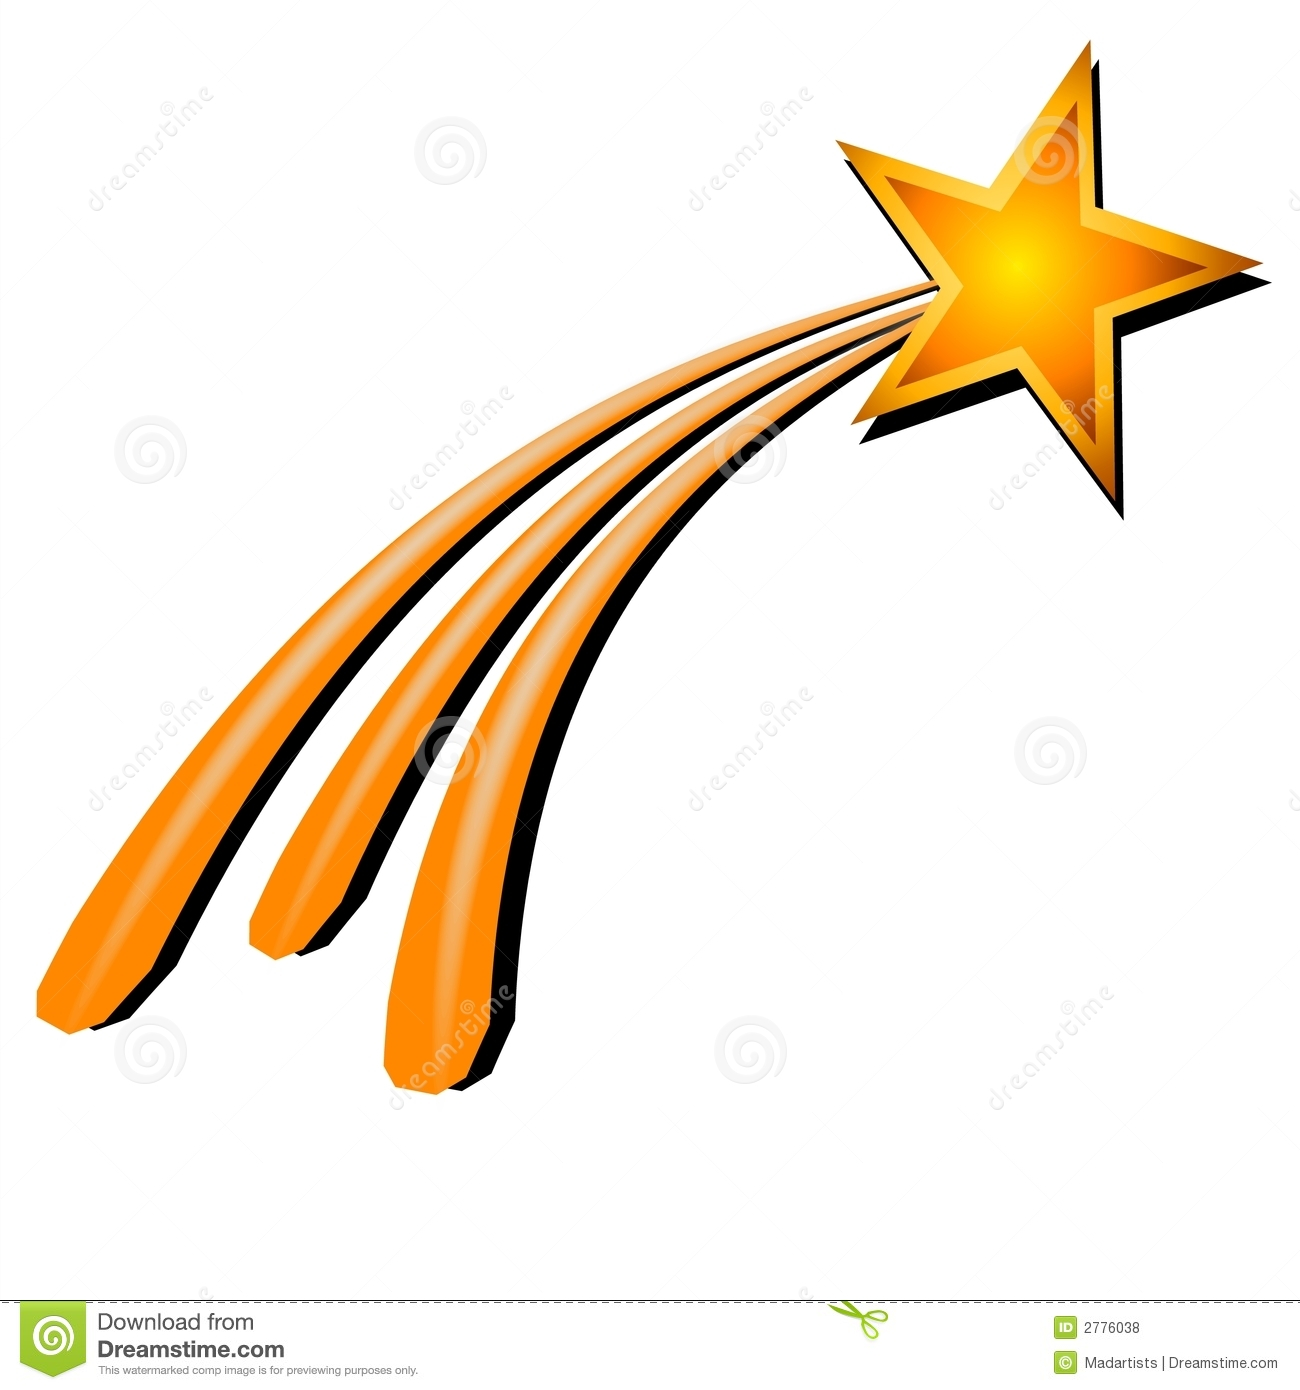 Fun clipart shooting star In clipart THE background no